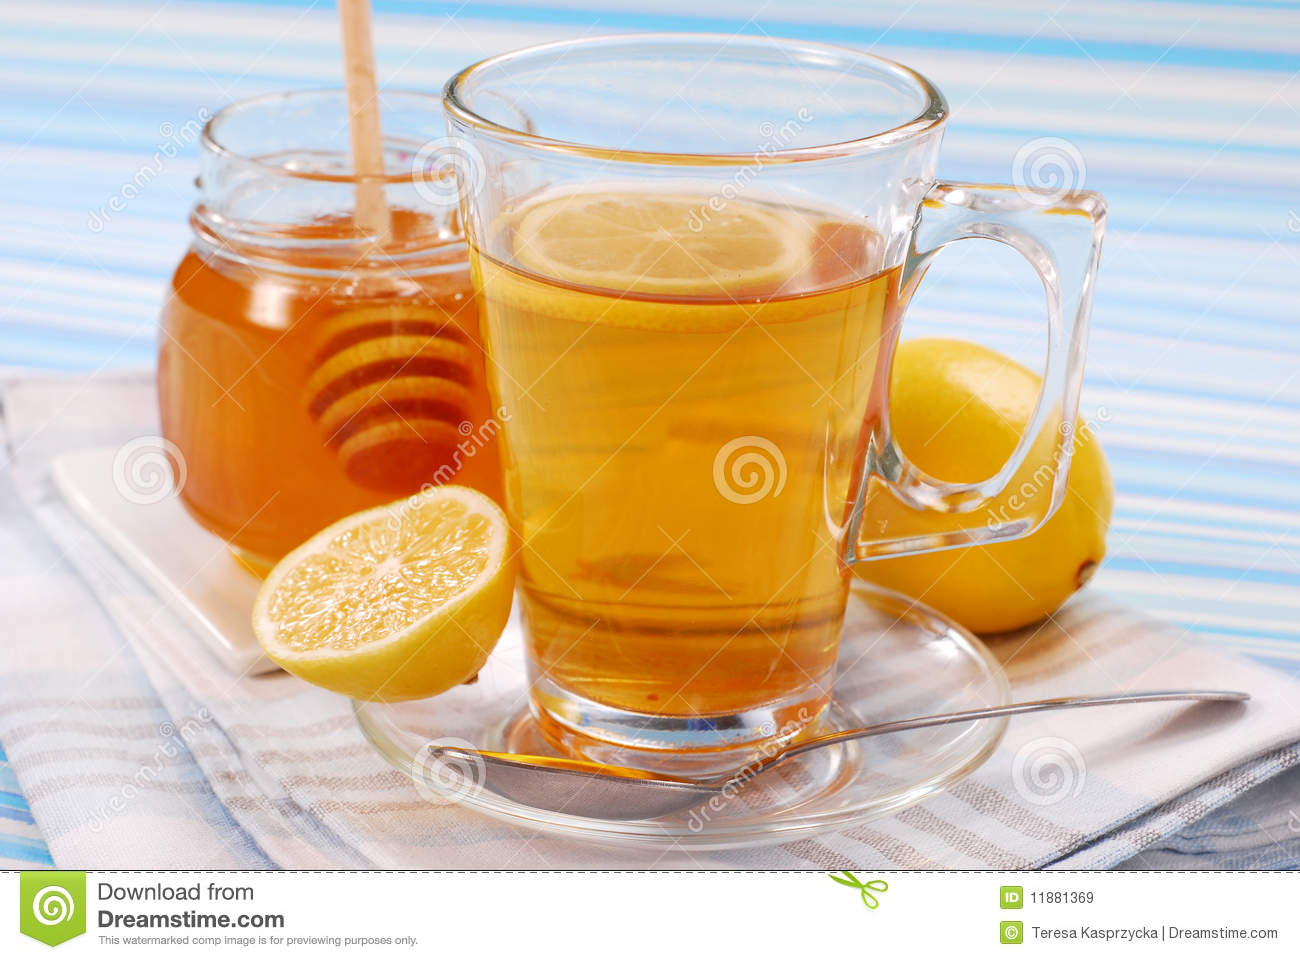 Tea With Lemon And Honey Royalty Free Stock Images - Image: 11881369